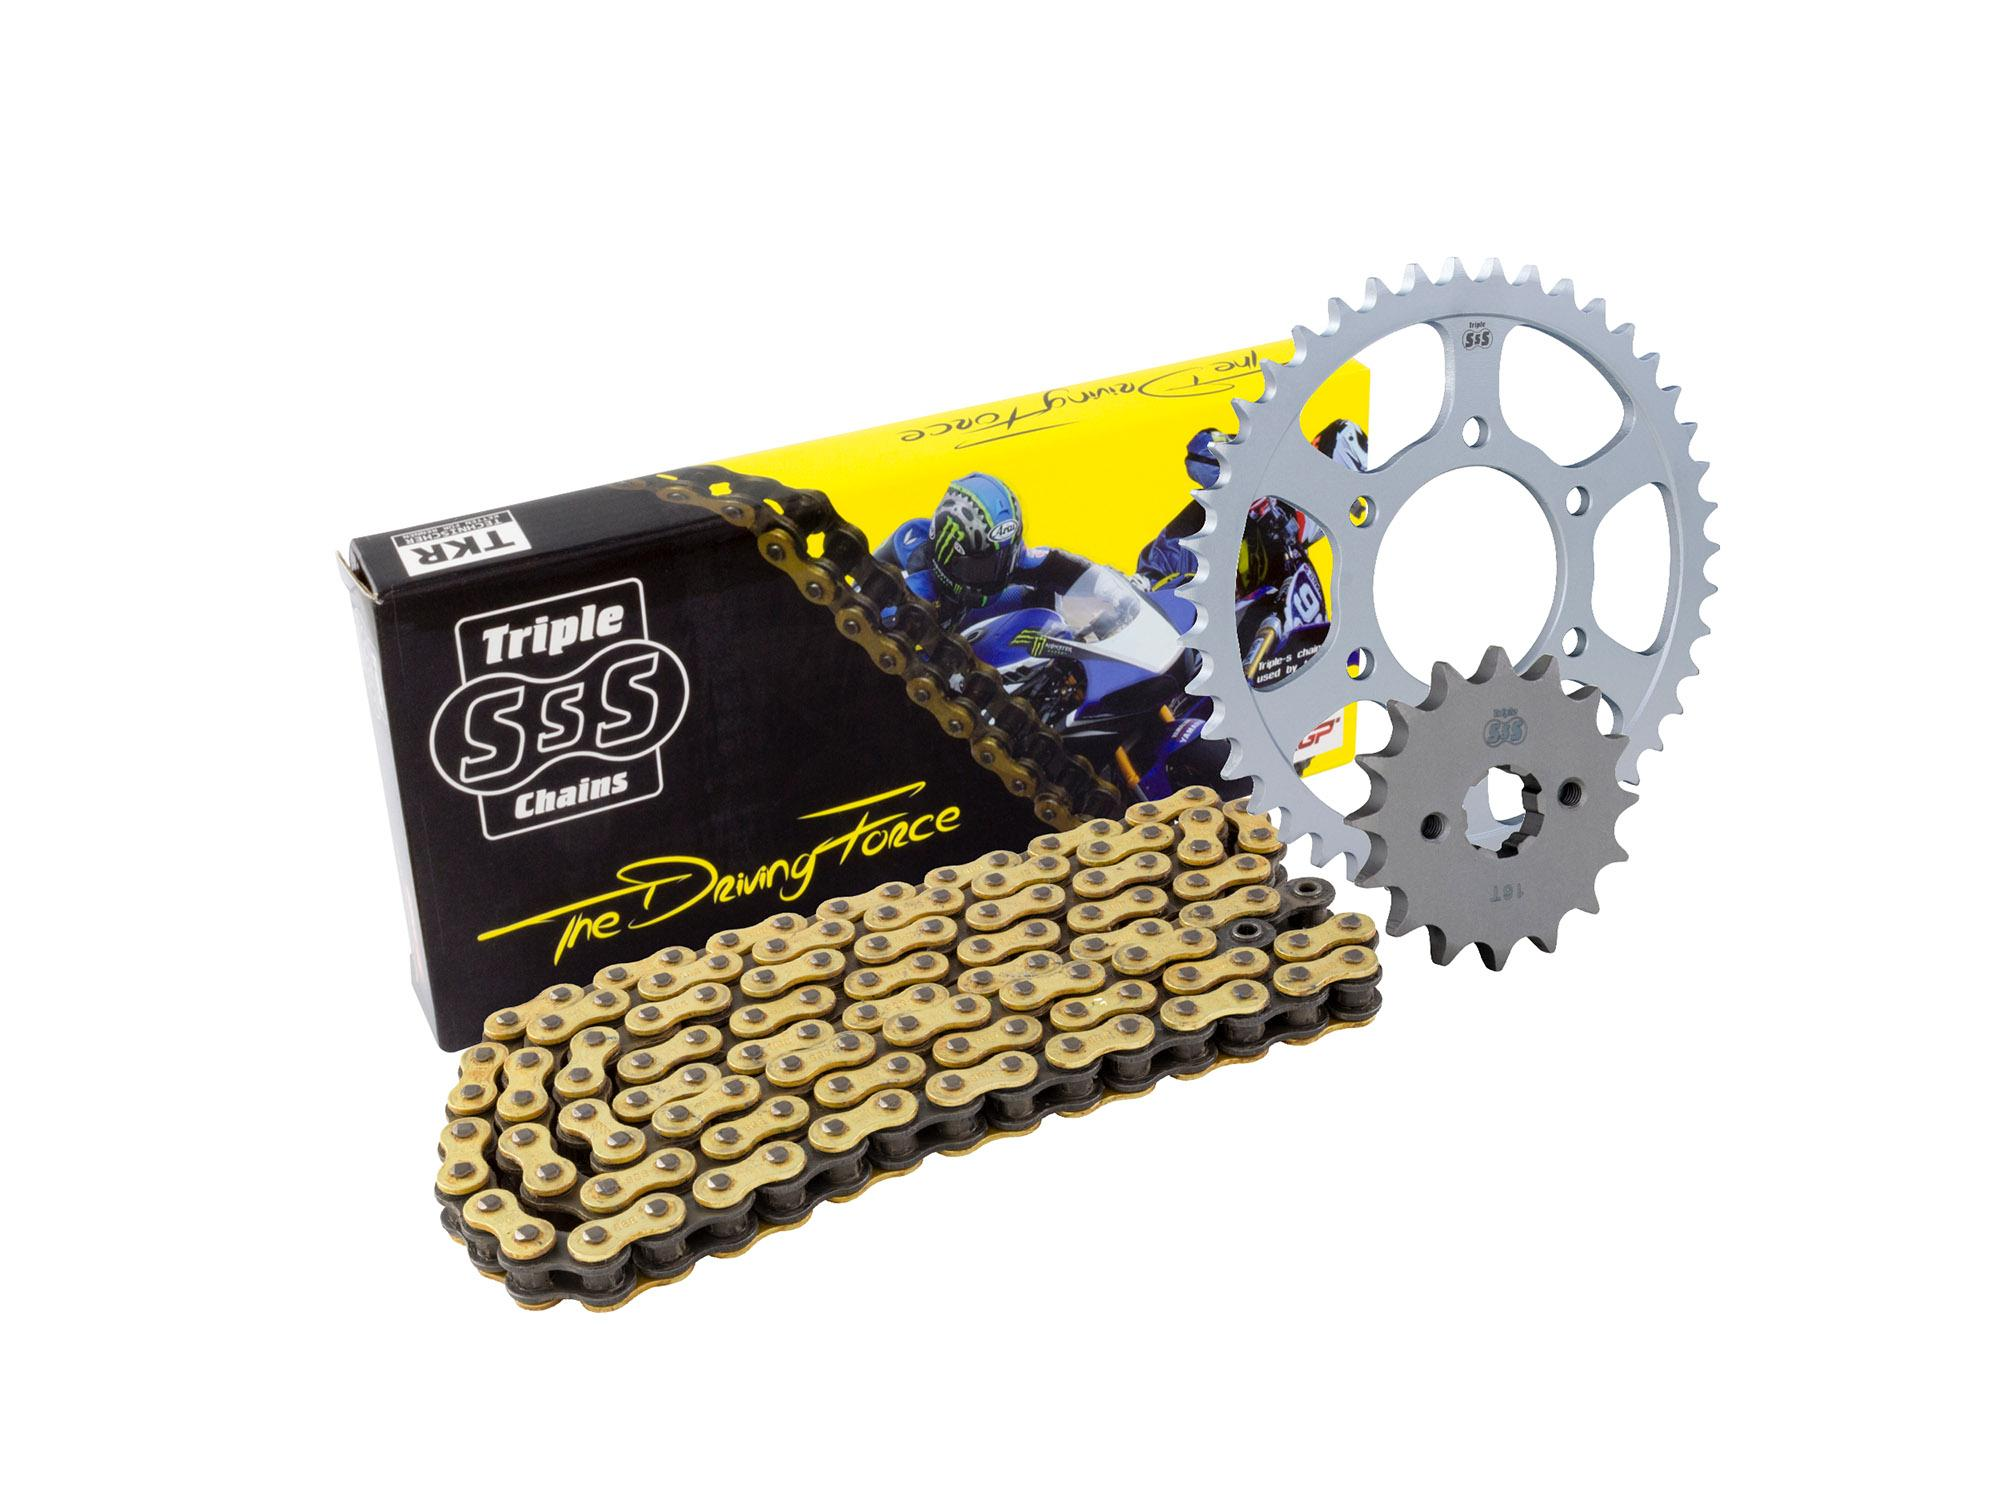 Honda CBR600 F1 01 Chain & Sprocket Kit: 16T Front, 45T Rear, HD O-Ring Gold Chain 525H 112Link